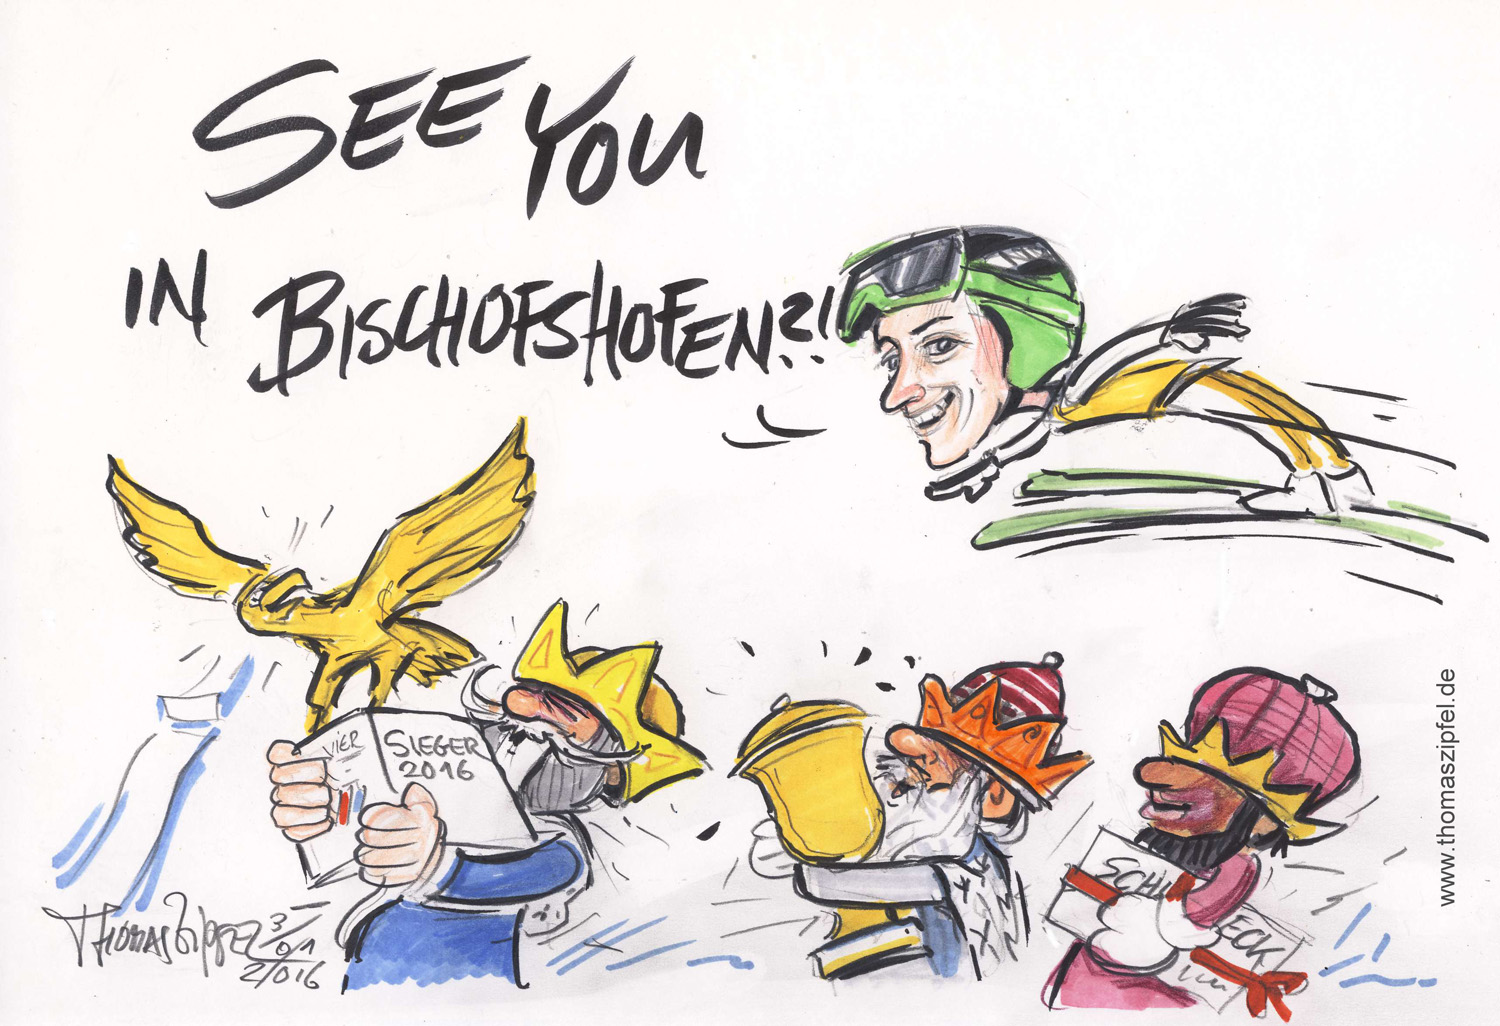 See you in Bischofshofen